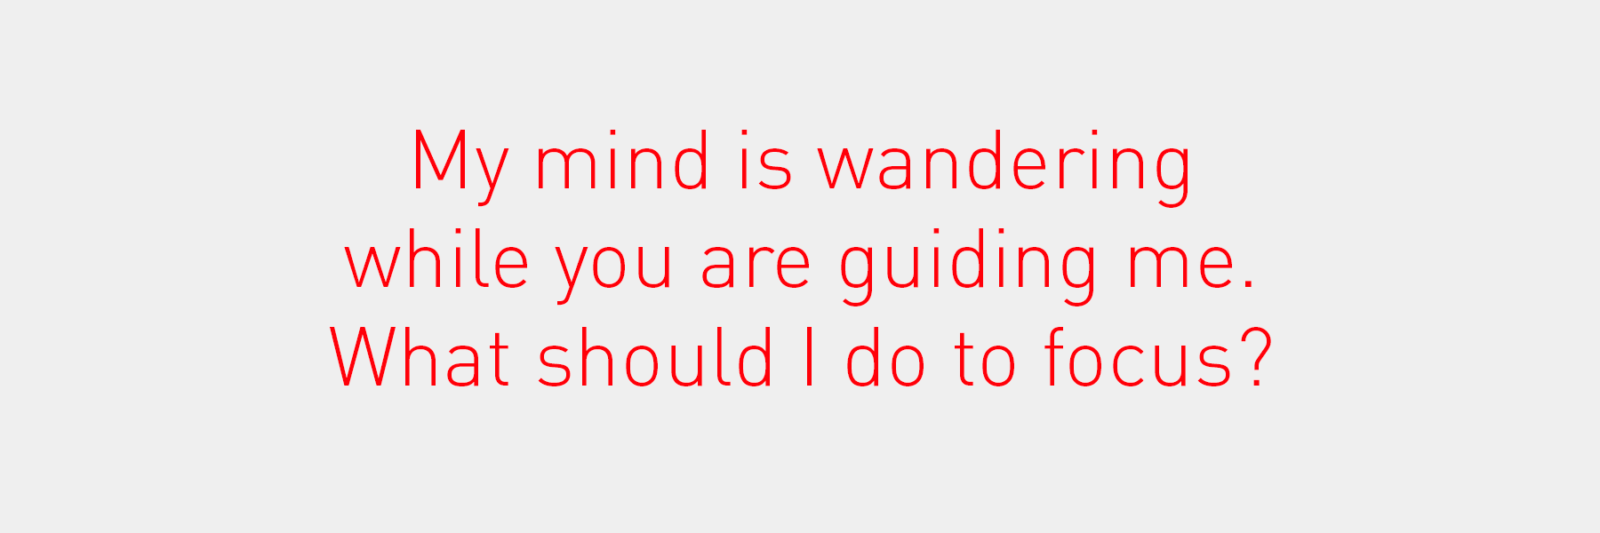 My mind is wandering while you are guiding me. What should I do to focus?